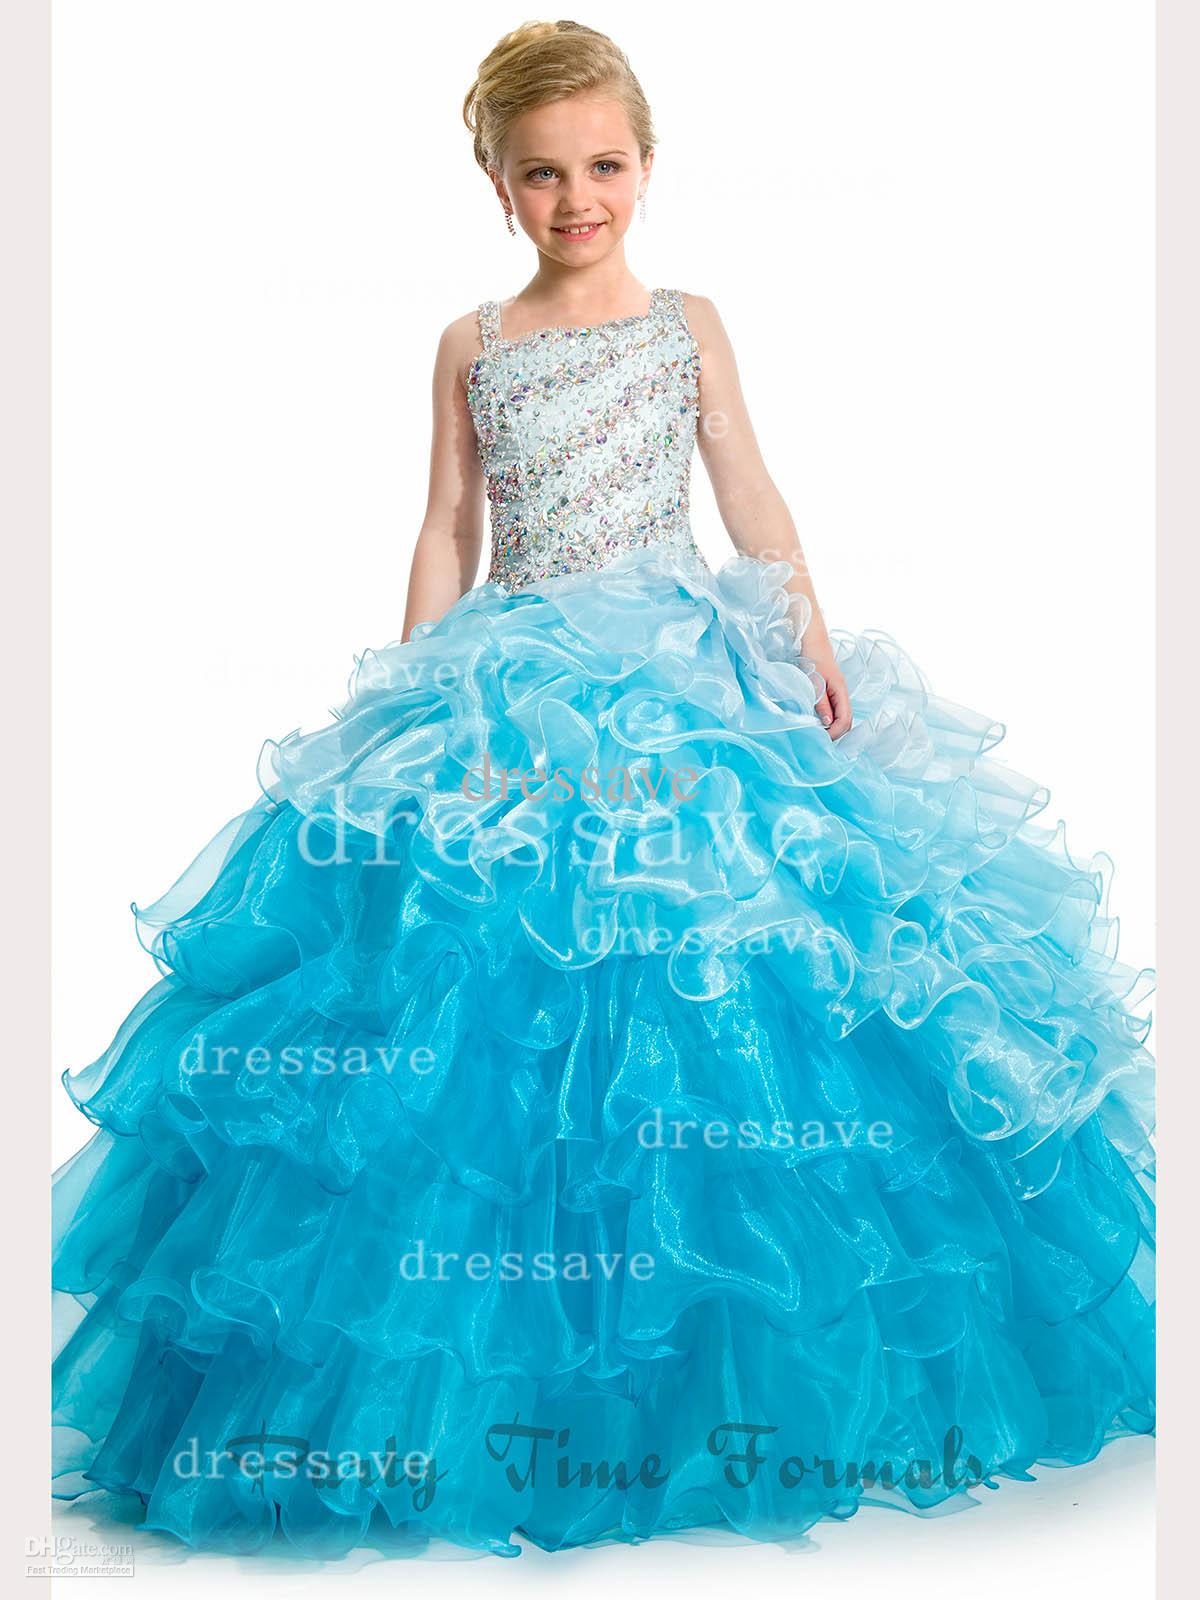 2014 Pageant Gowns For Kids Halter Beads Ball Gown Girls' Formal ...